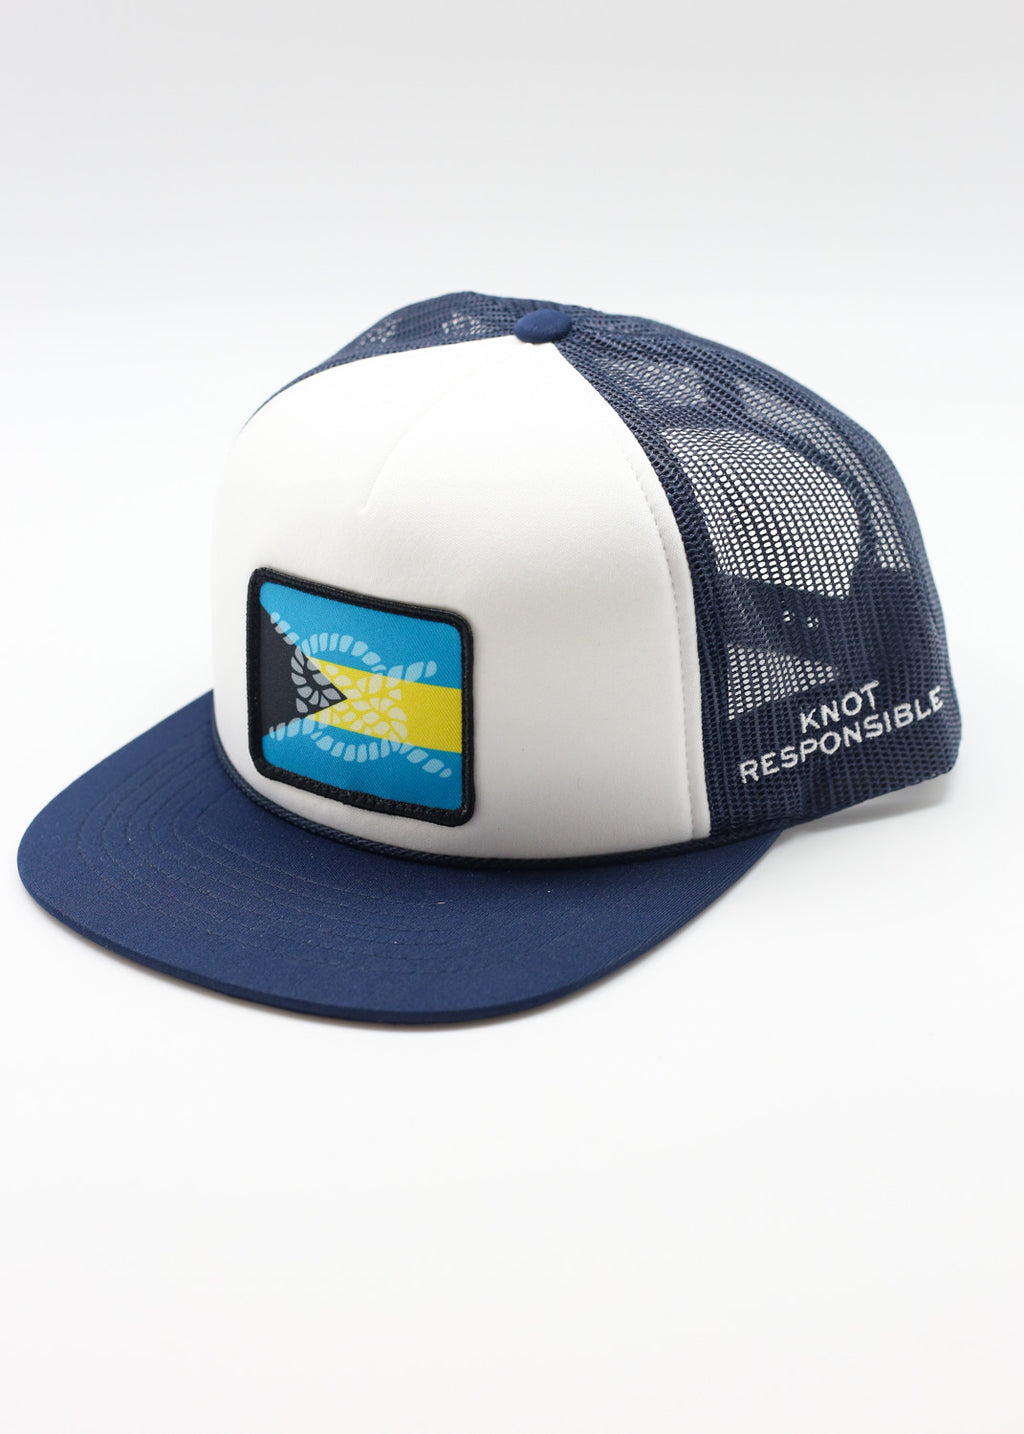 Limited Edition Abaco Strong Foam Trucker Hat- Navy/White